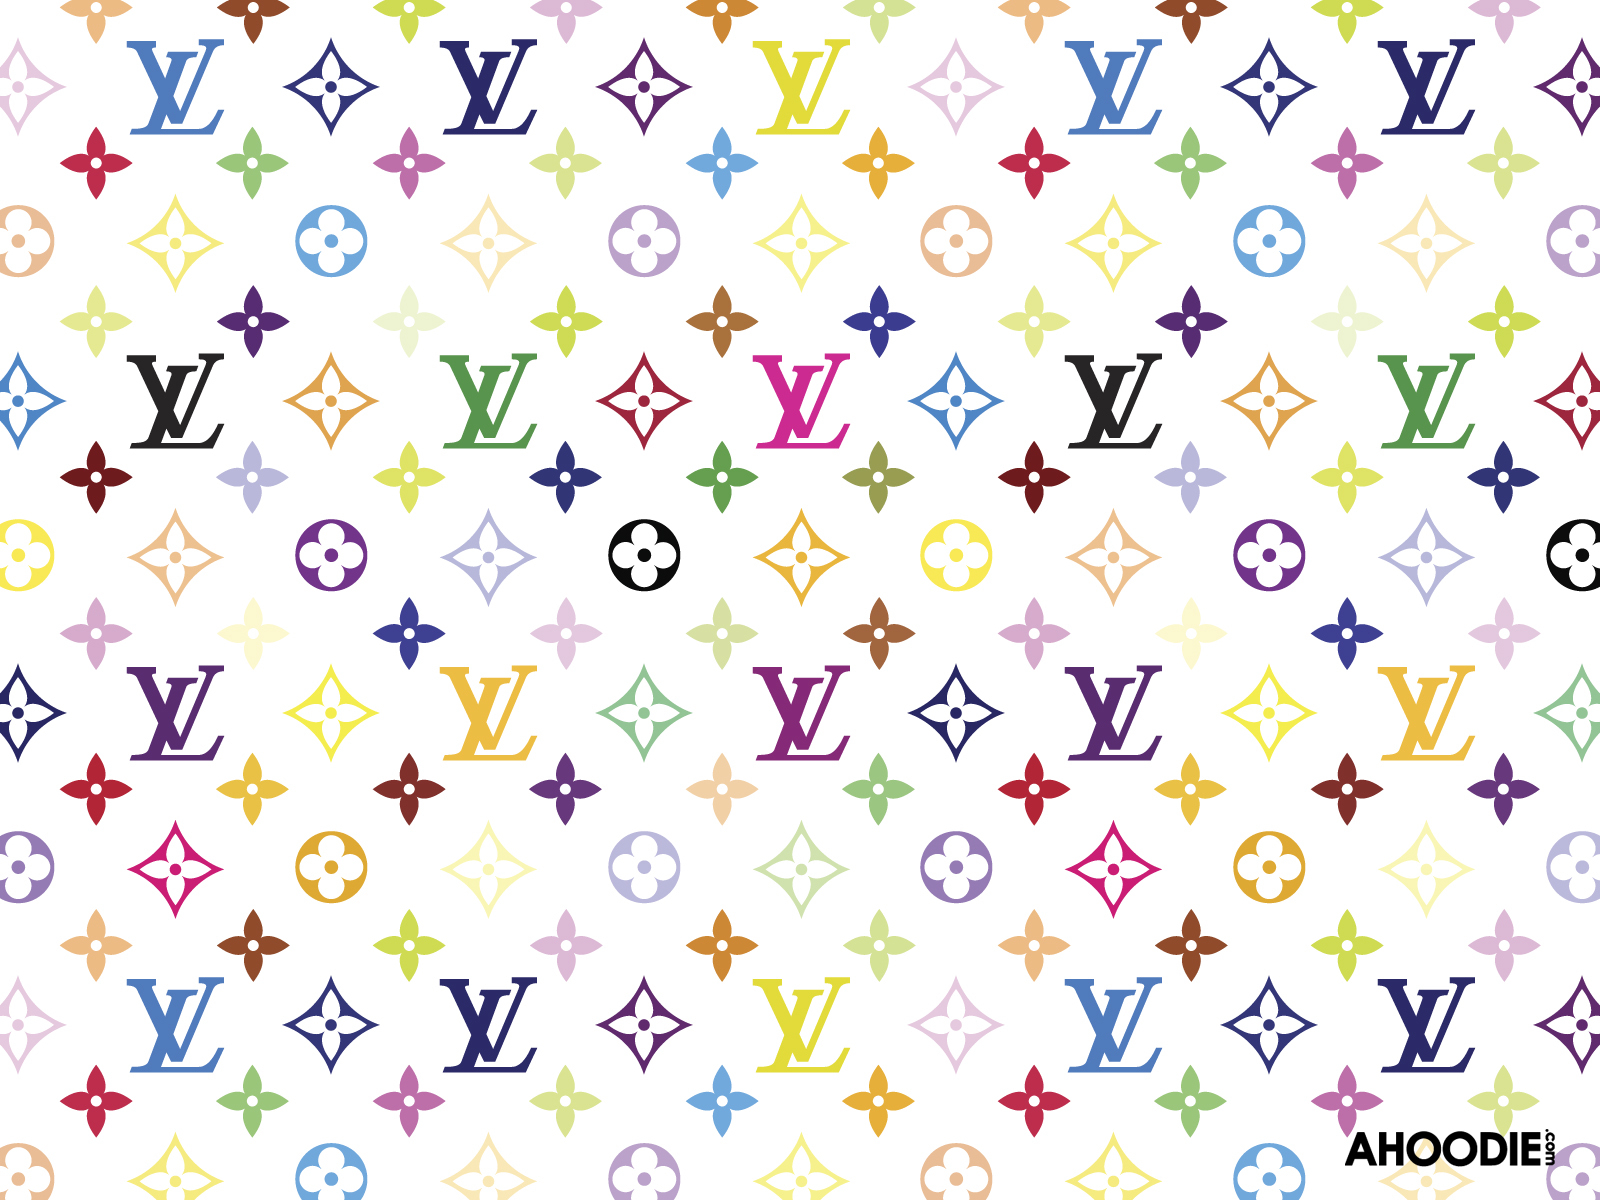 20464 download wallpaper Brands, Background, Logos, Louis Vuitton screensavers and pictures for free